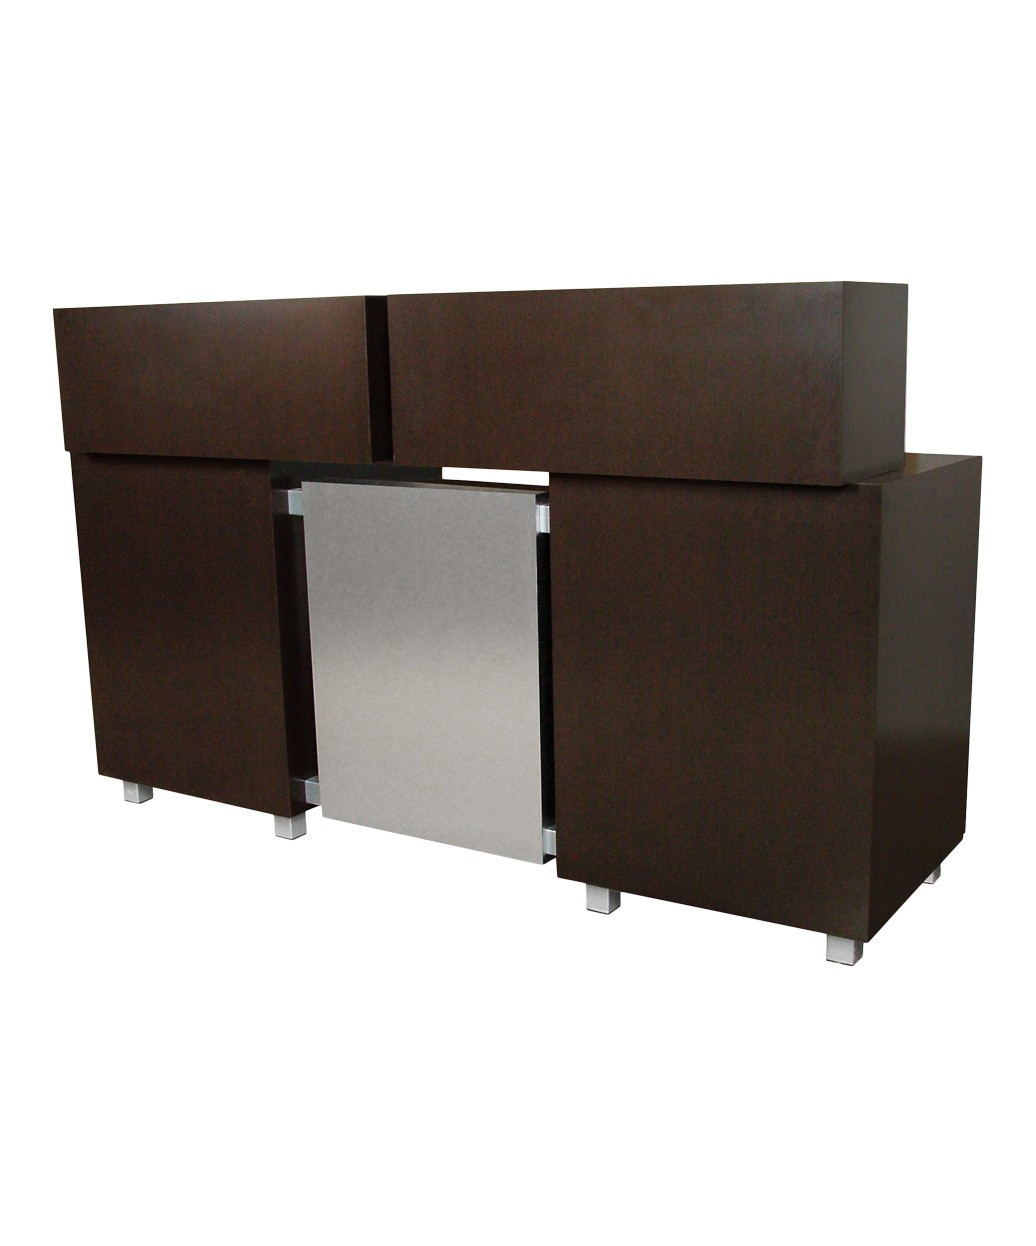 931-74 Amati Galileo reception Desk